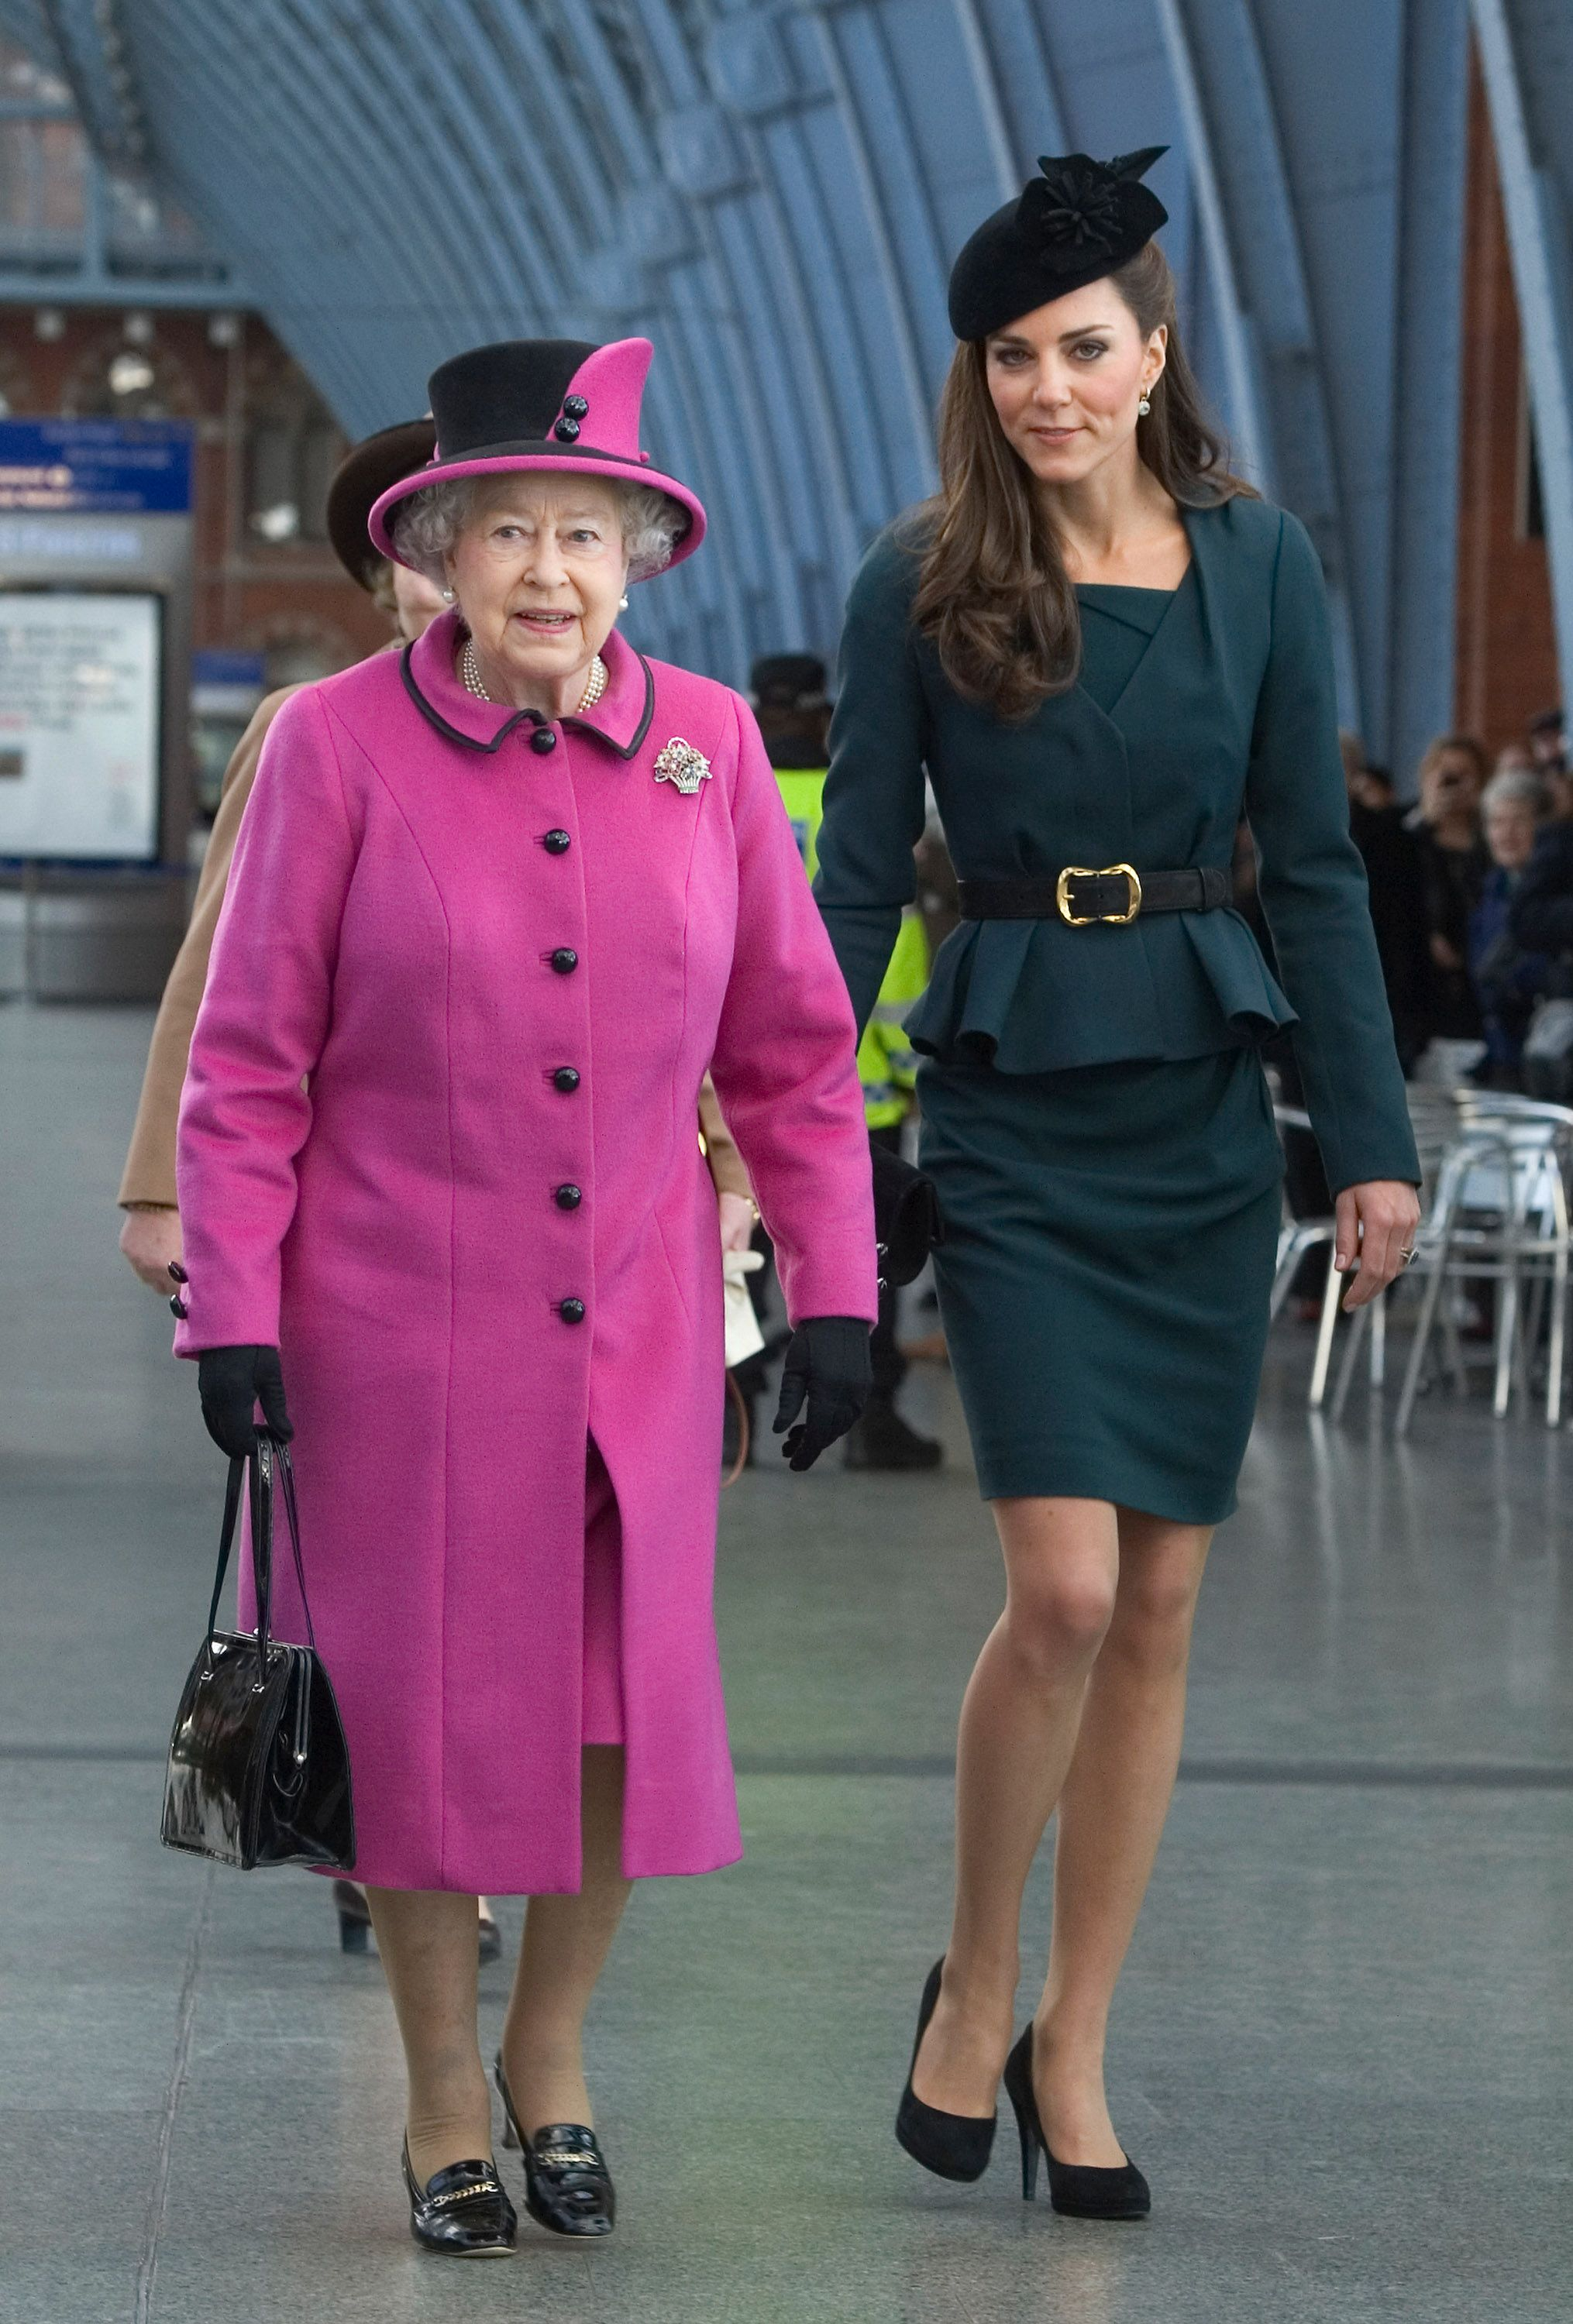 7afc4331ee1b5 Fashion Rules and Style Protocol the Royal Family Must Follow